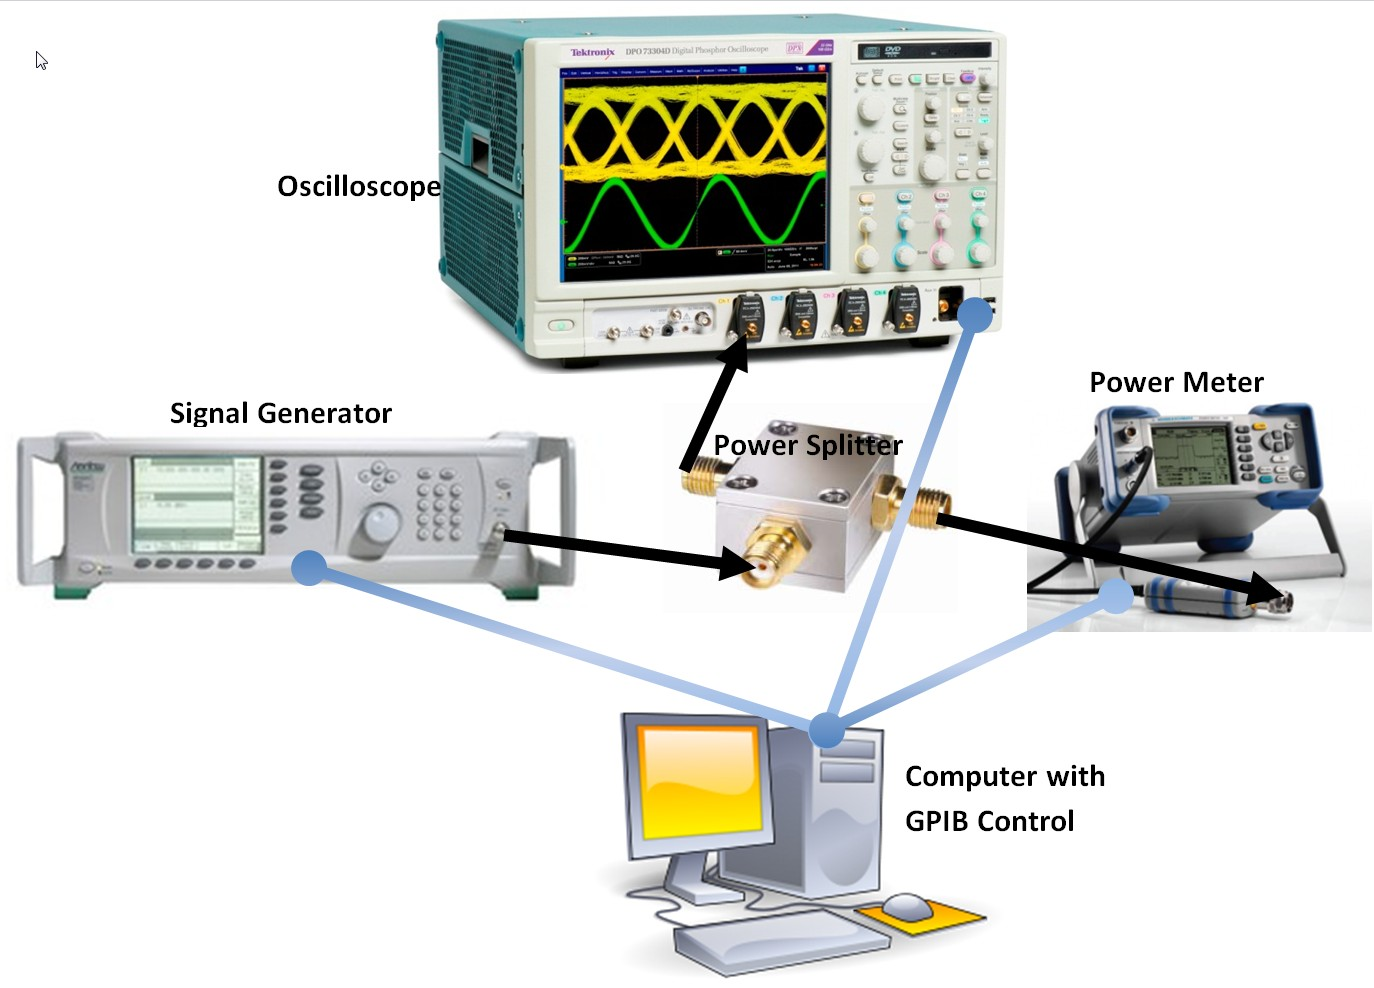 Bode Analyzer Connections : Joel avrunin s effective bits of knowledge how to make an